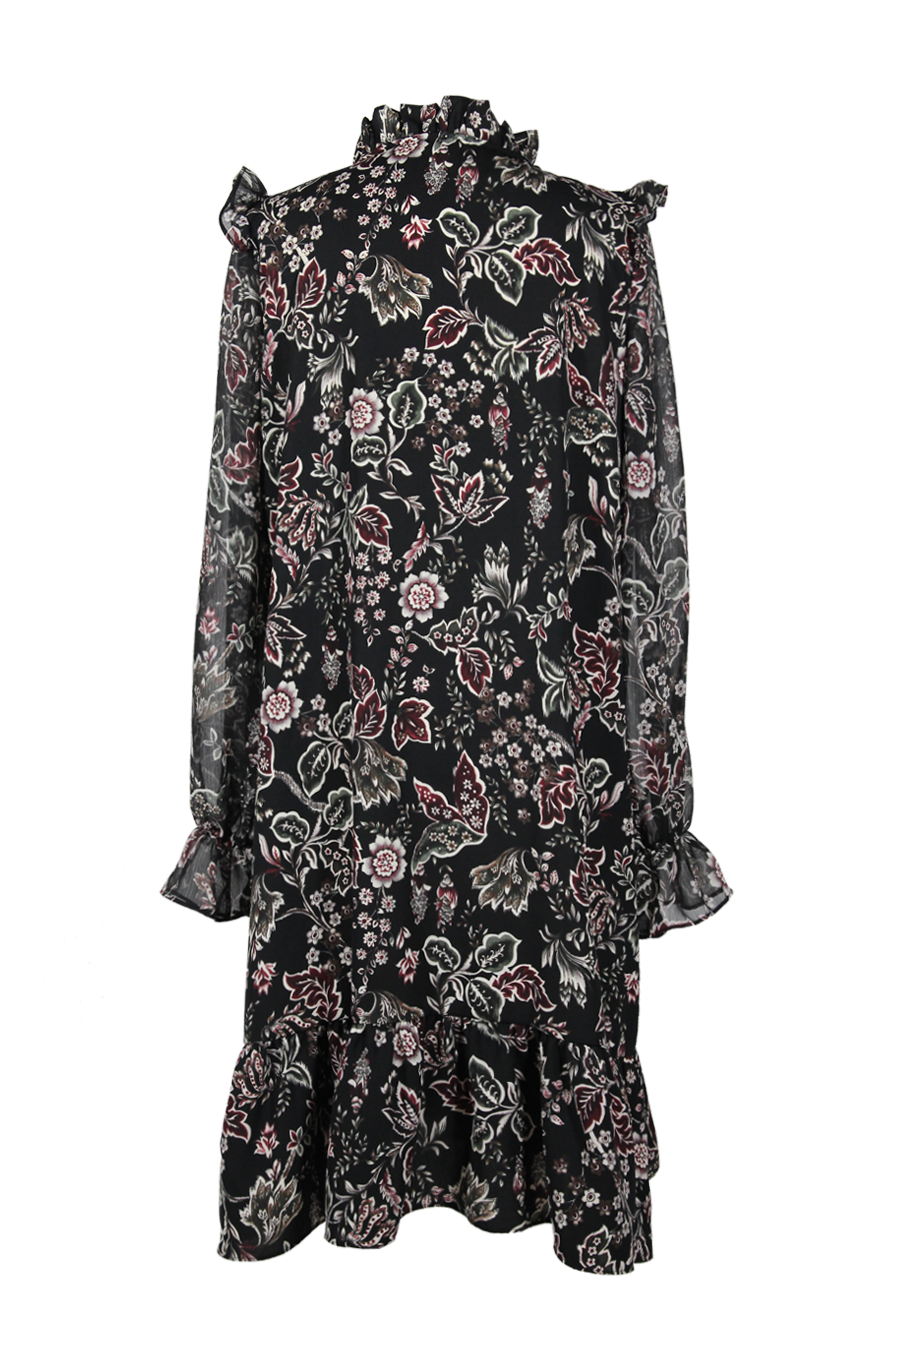 OLIVIA NZ Store online | Austyn Floral Dress / Black